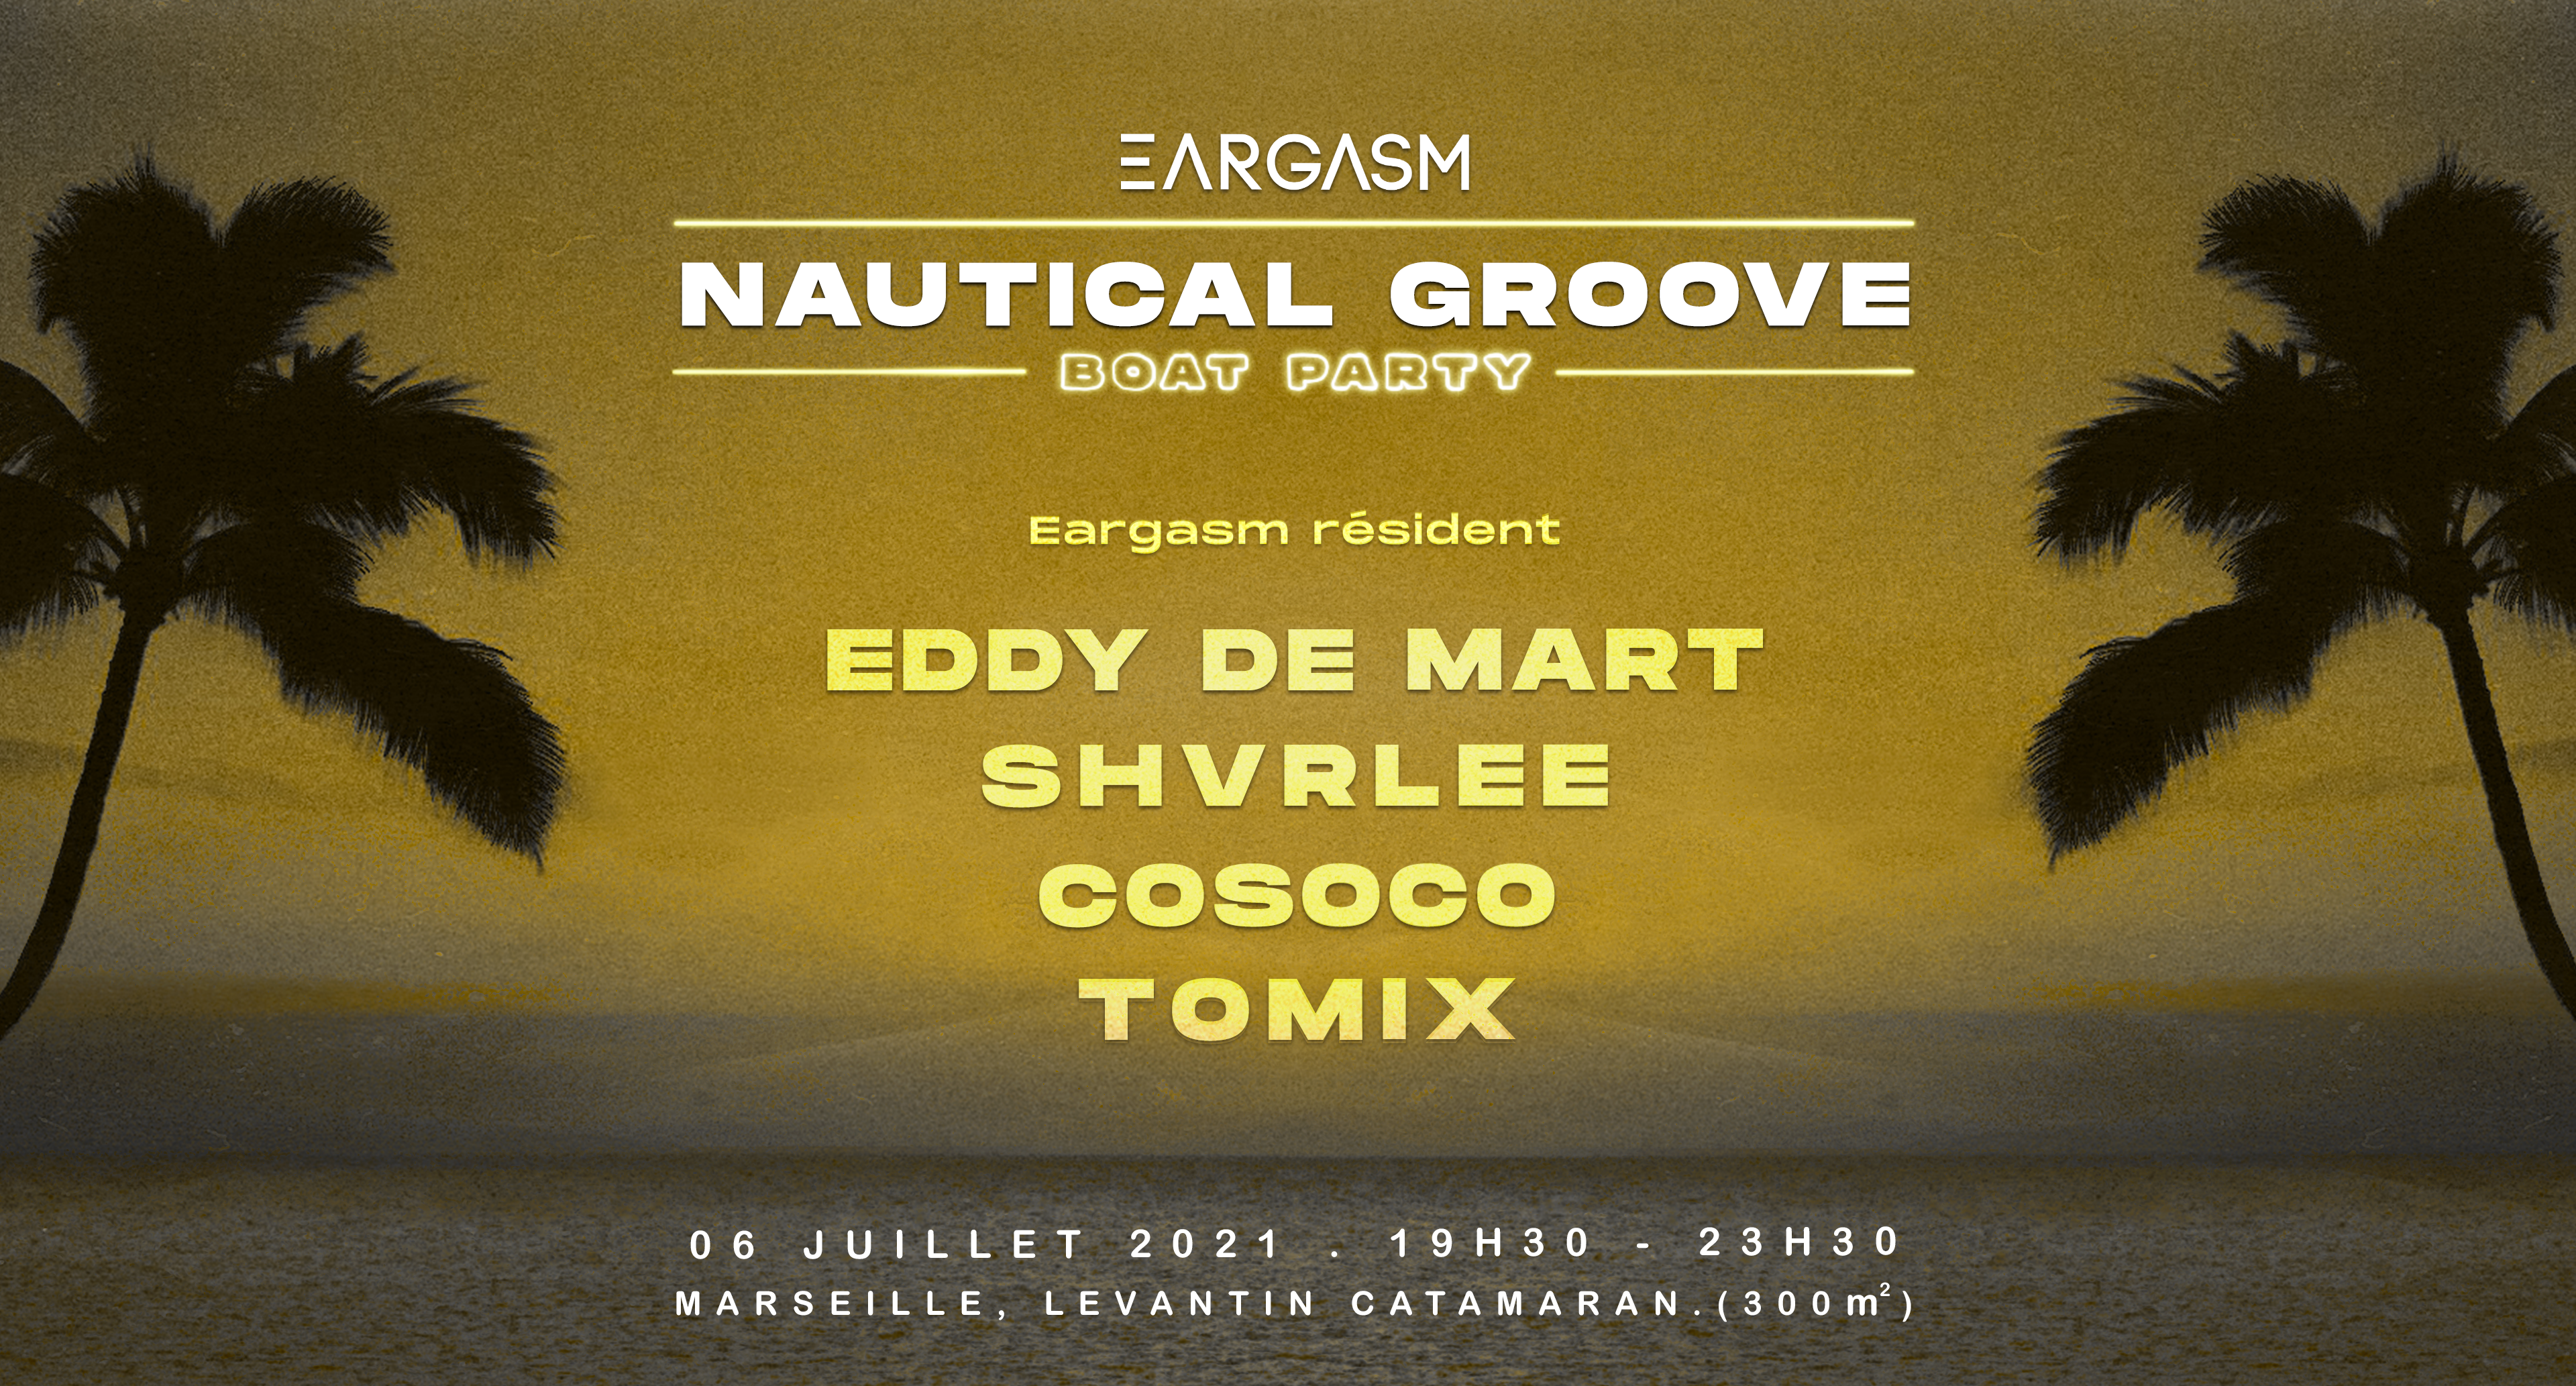 NAUTICAL GROOVE #7 [BOAT PARTY] by Eargasm